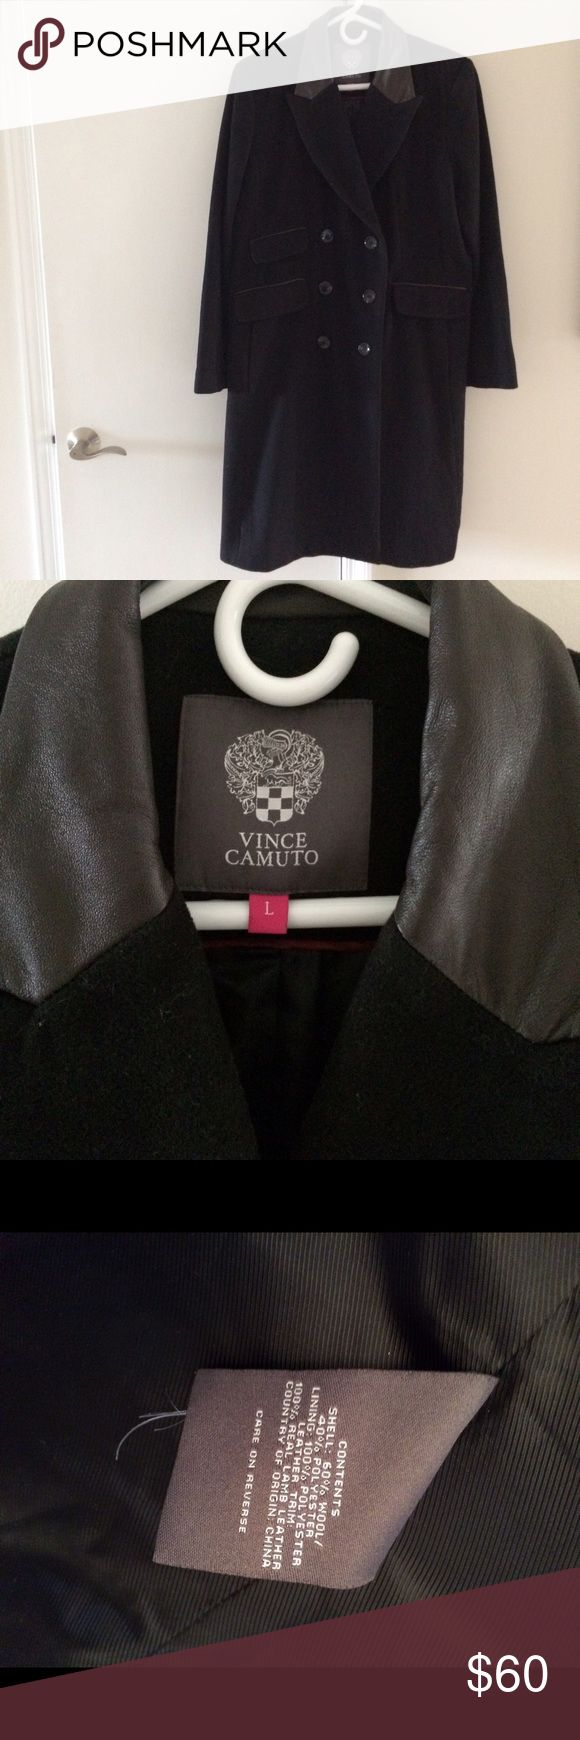 VINCE CAMUTO WOOL KNEE LENGTH COAT Black wool coat fully lined with brown leather collar and elbow patches. Vince Camuto Jackets & Coats